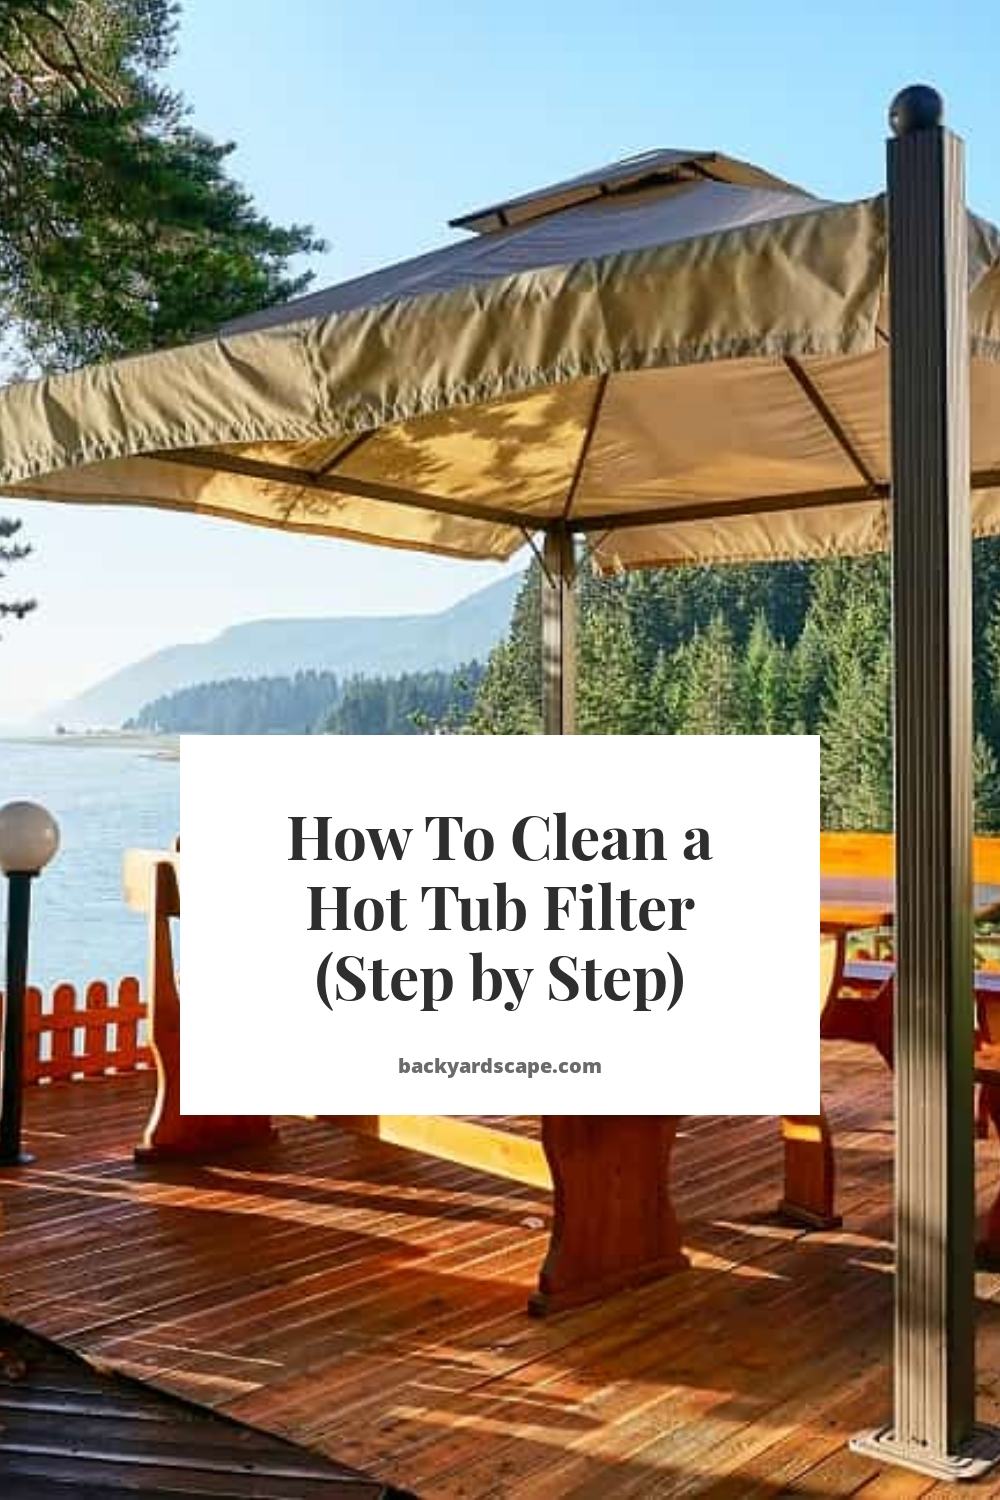 How To Clean a Hot Tub Filter (Step by Step)